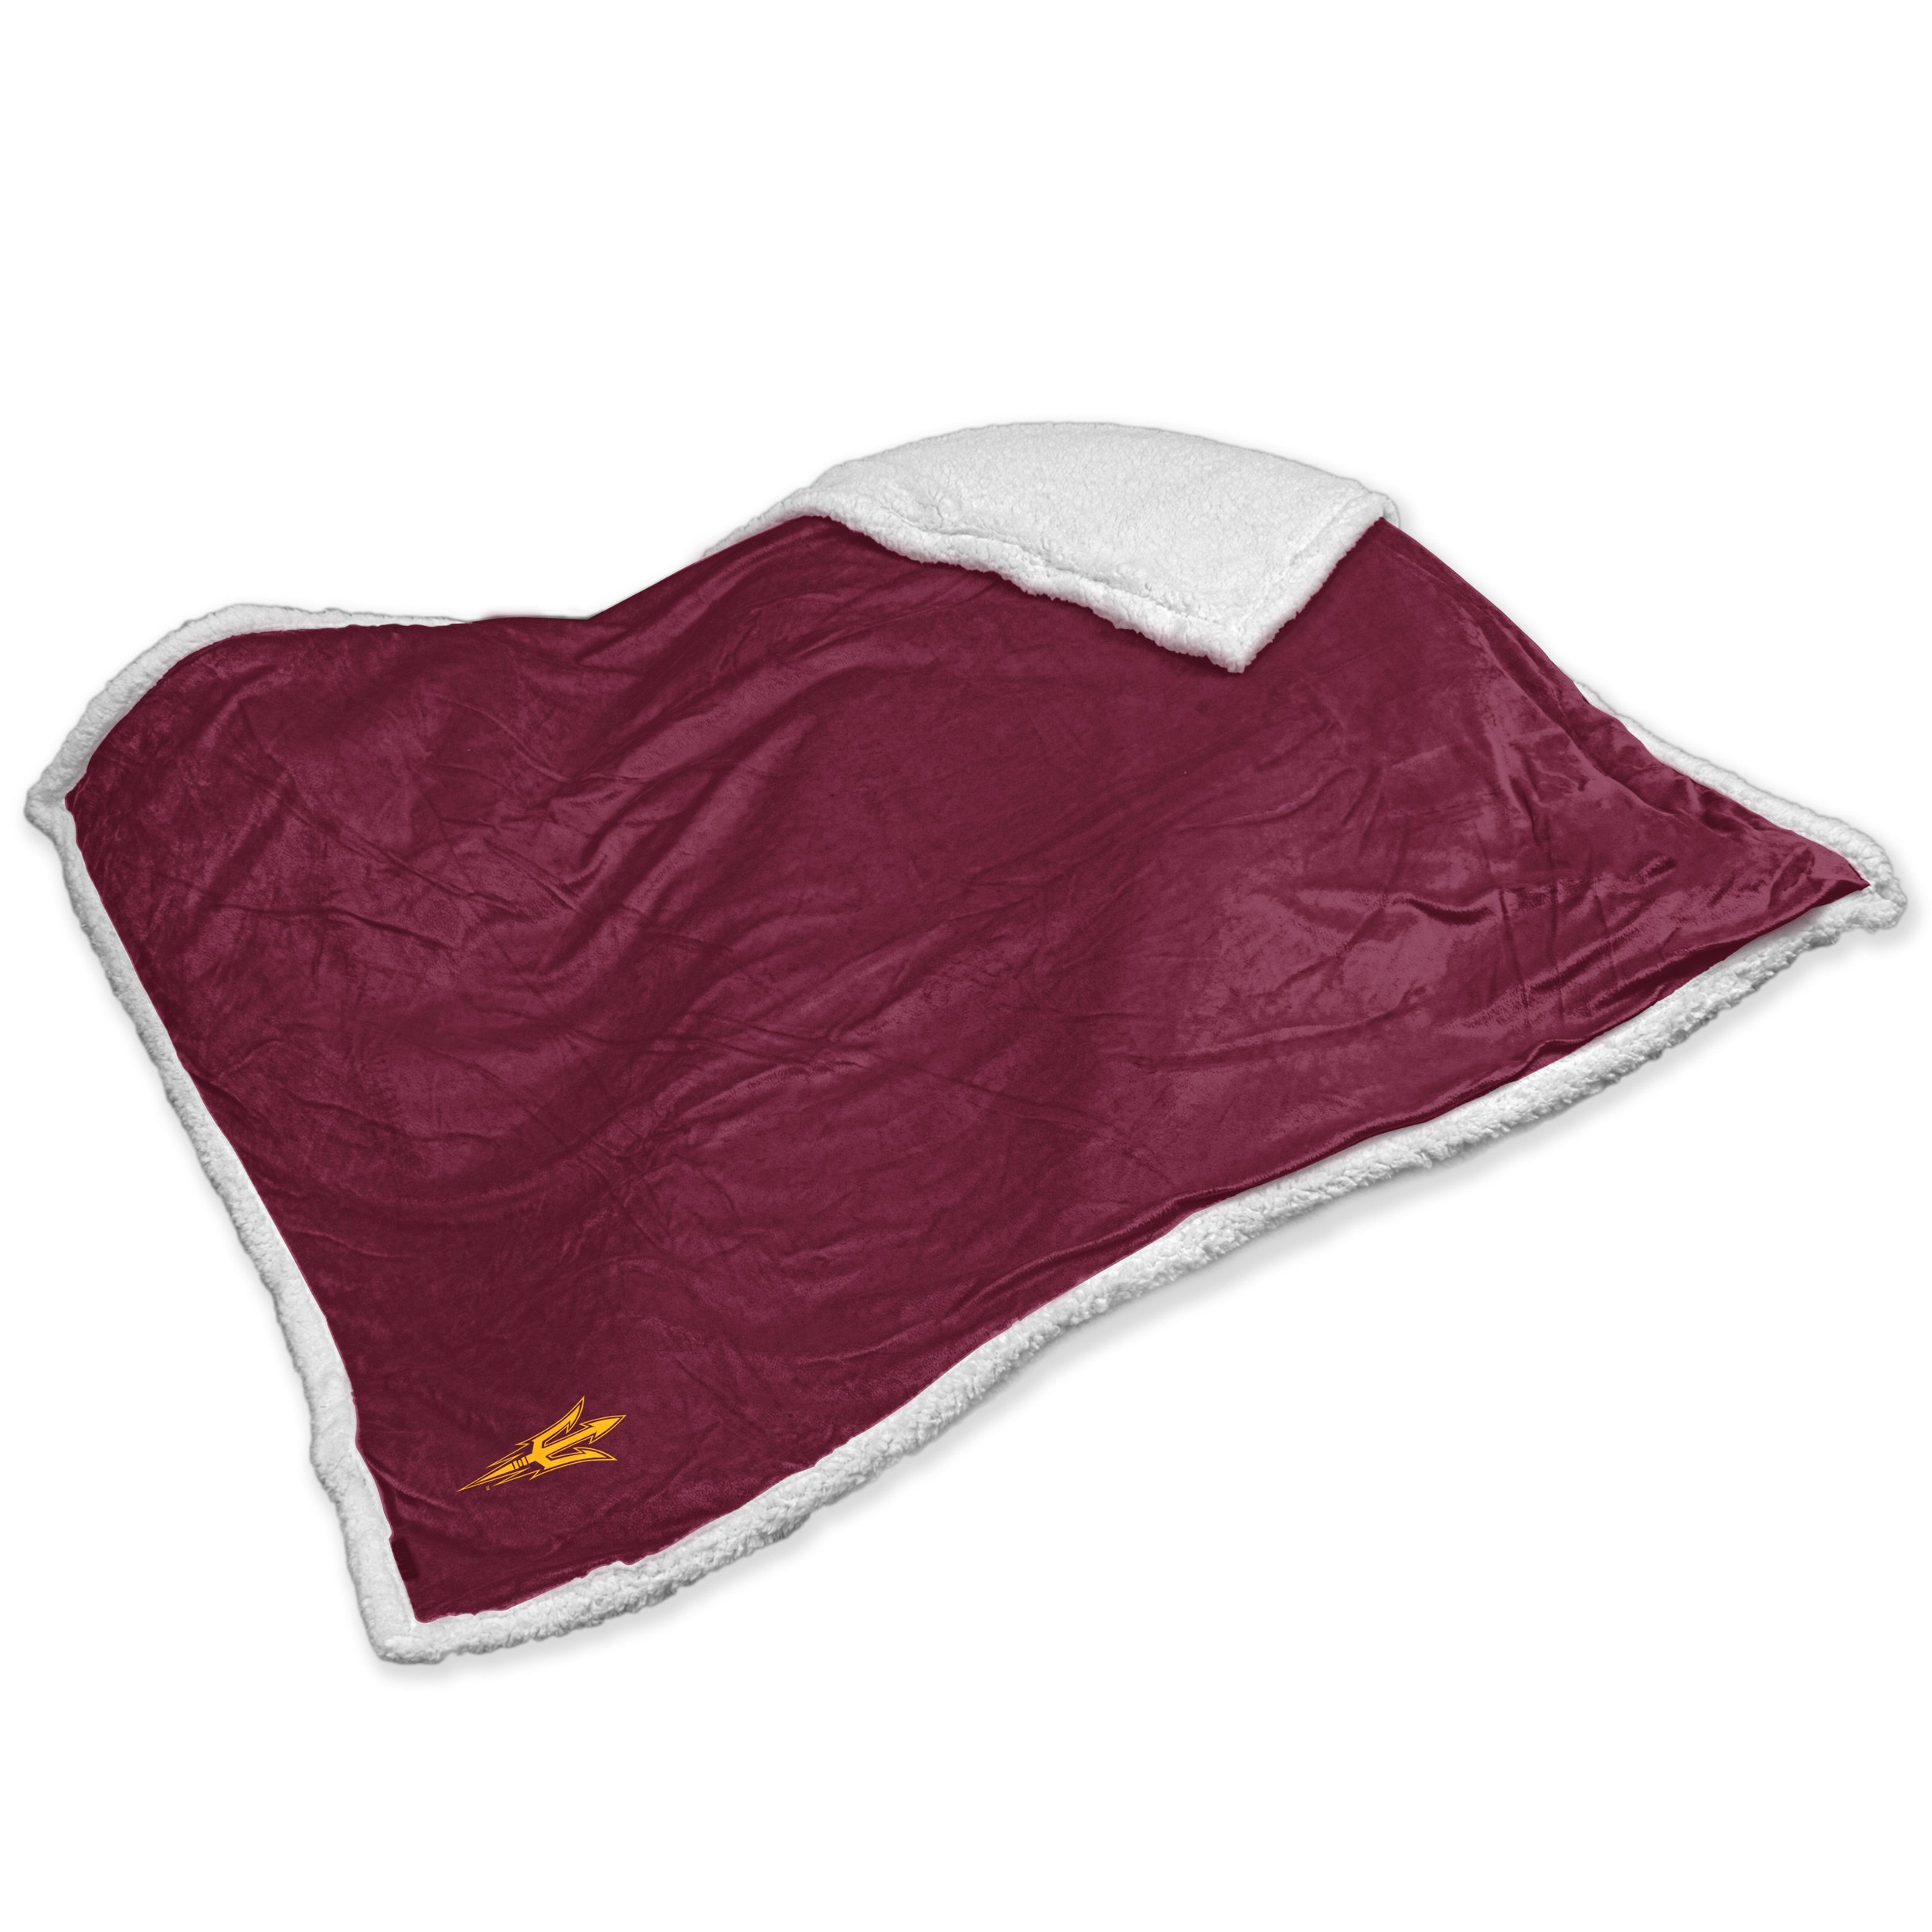 Logo Brands Officially Licensed NCAA Sherpa Throw, One Size